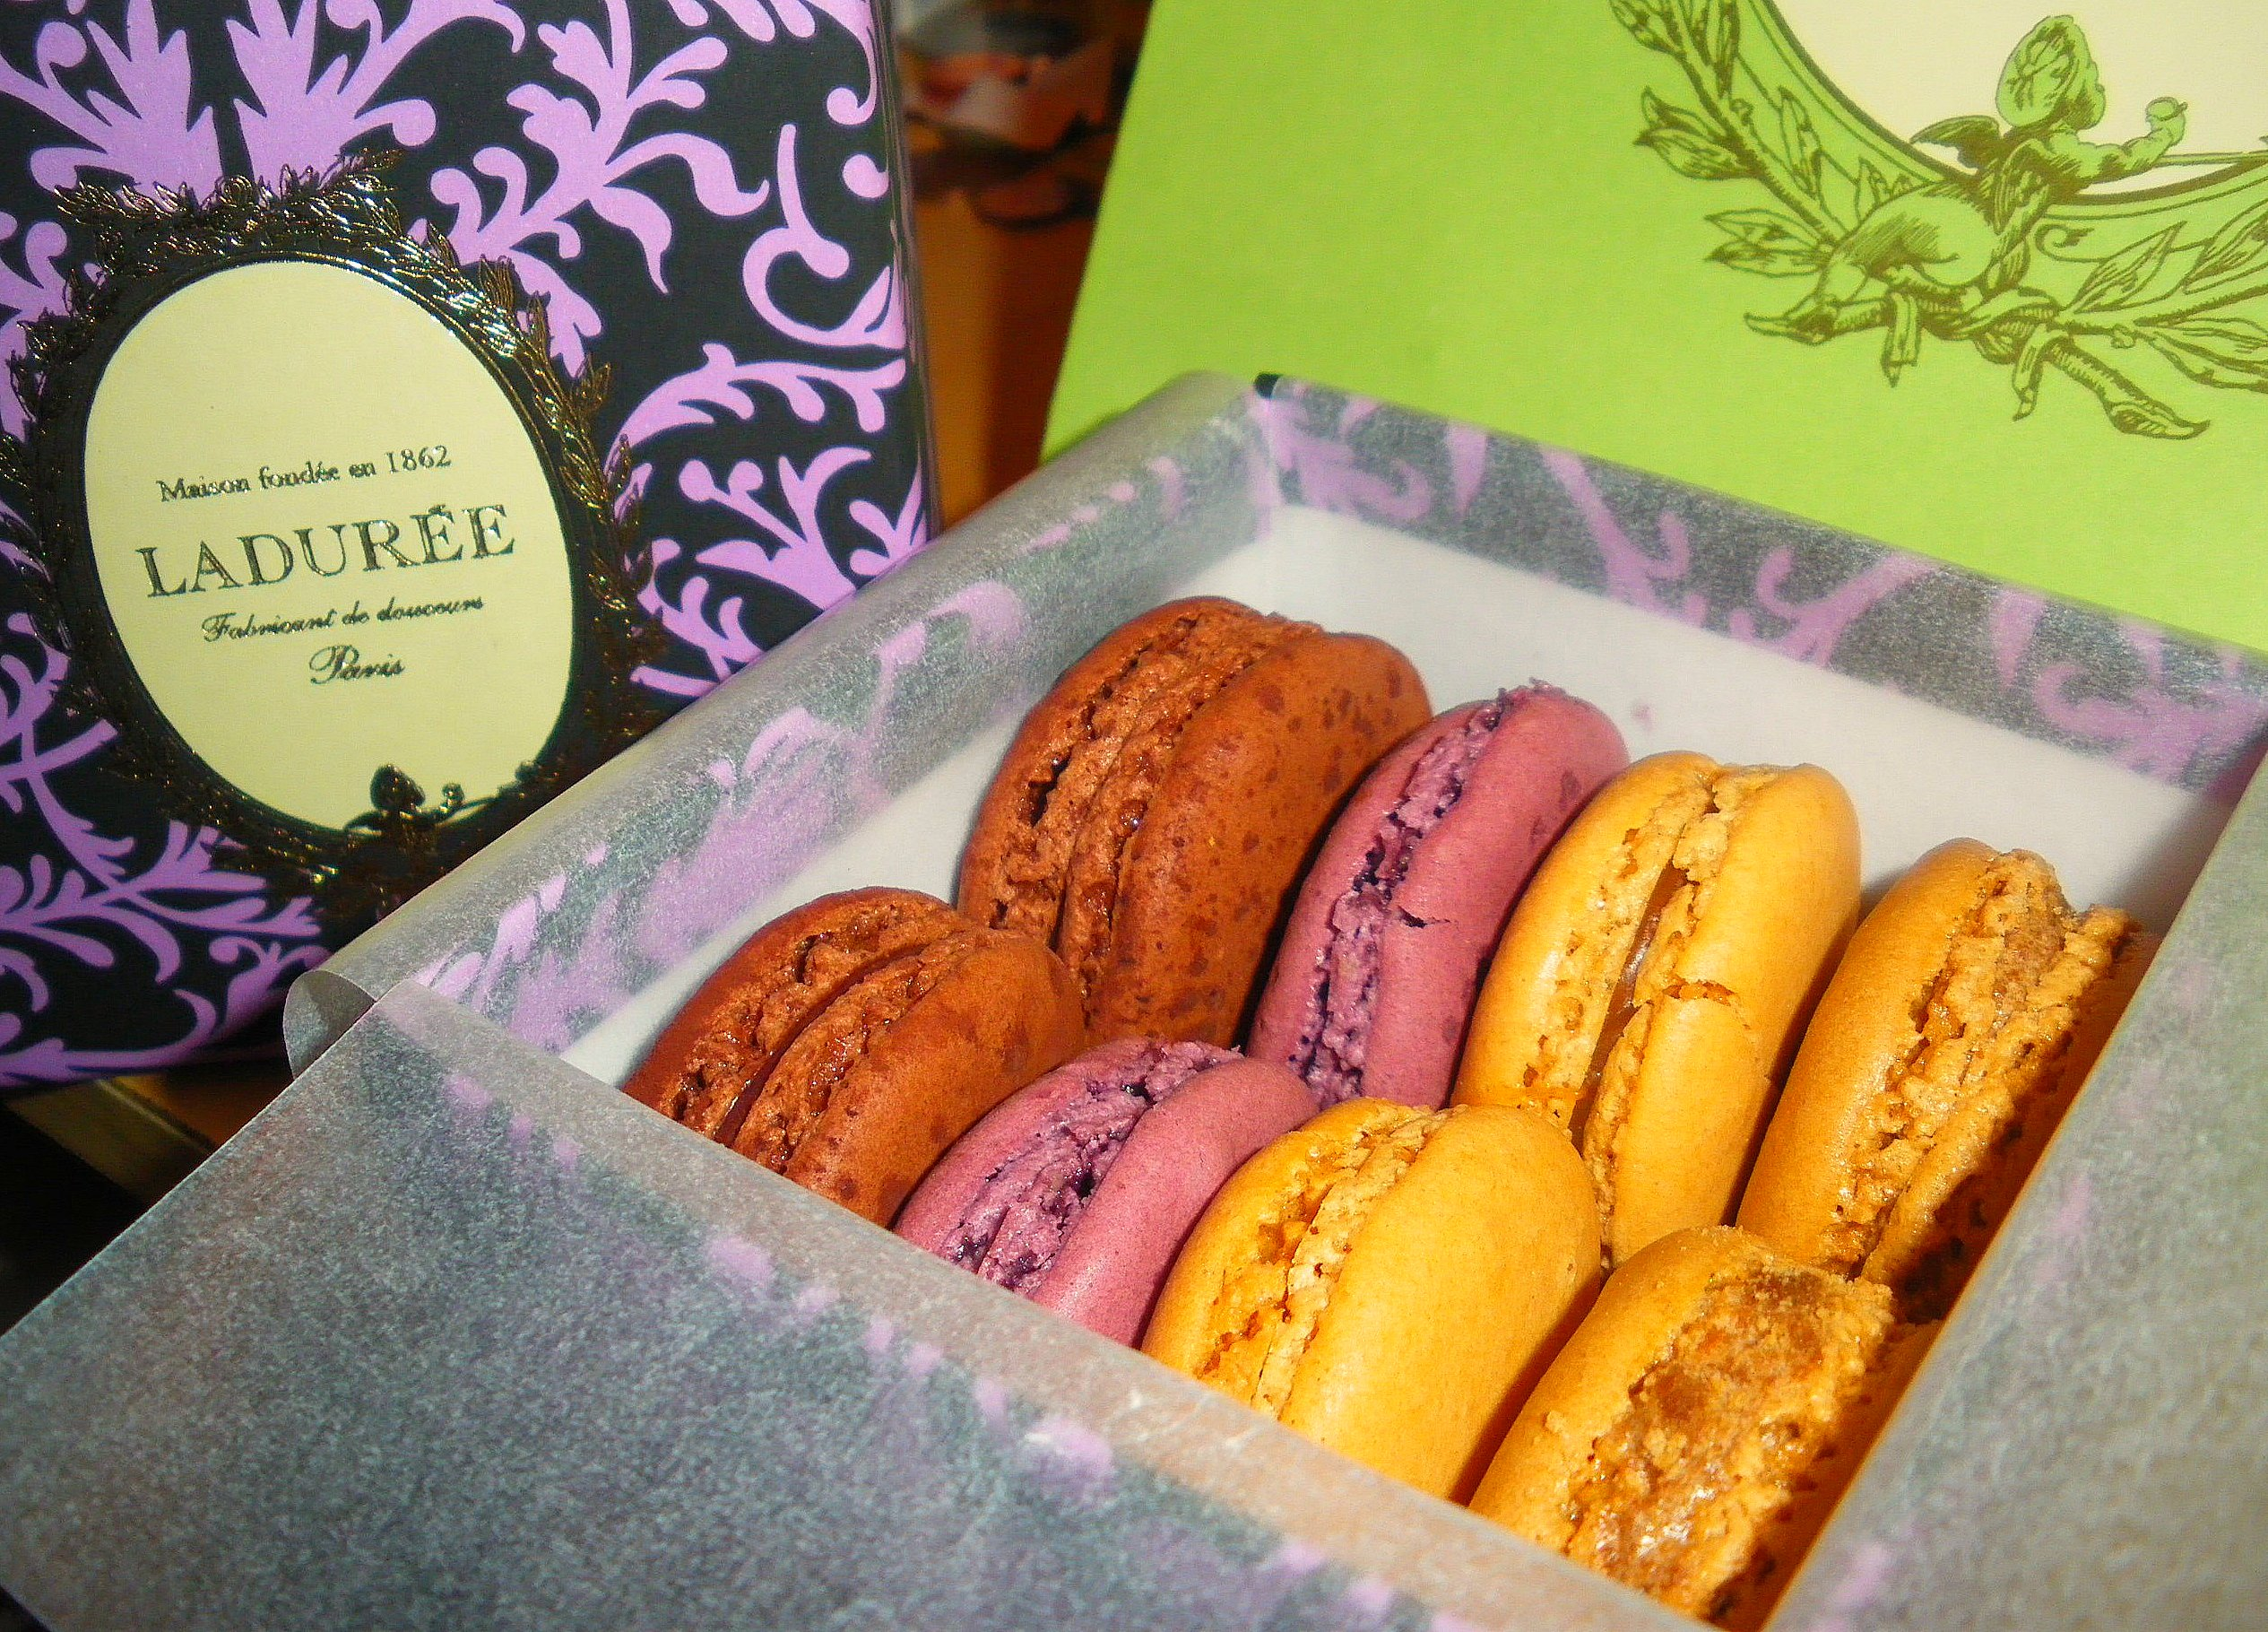 ladurée industry Ladure china - marketing no description by industry growth high level of advertising many local bakeries ladur e's brand awareness is highest among upper middle class and wealthier individuals who have experienced the brand during travels to france or elsewhere abroad.